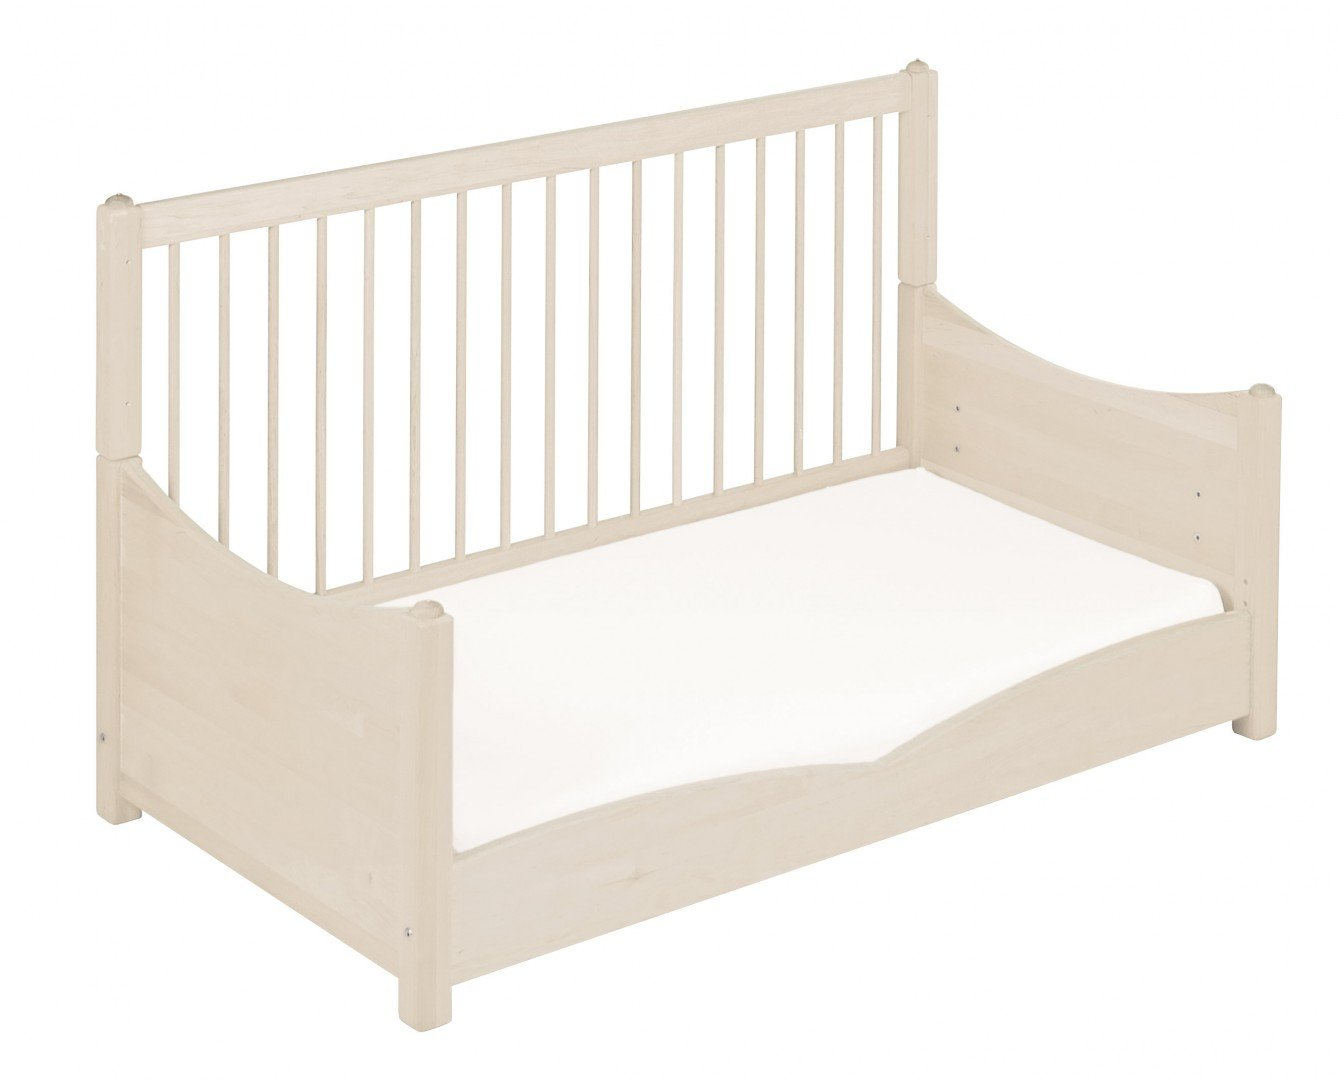 BioKinder 22128 Bed for babies and toddlers Luca from biological wood Bio-Kinder Bed Luca for Babies and Toddlers Adjustable height. 3 removable bars. Various features Sustainable solid biological wood (alder/pine). Biological finish 6